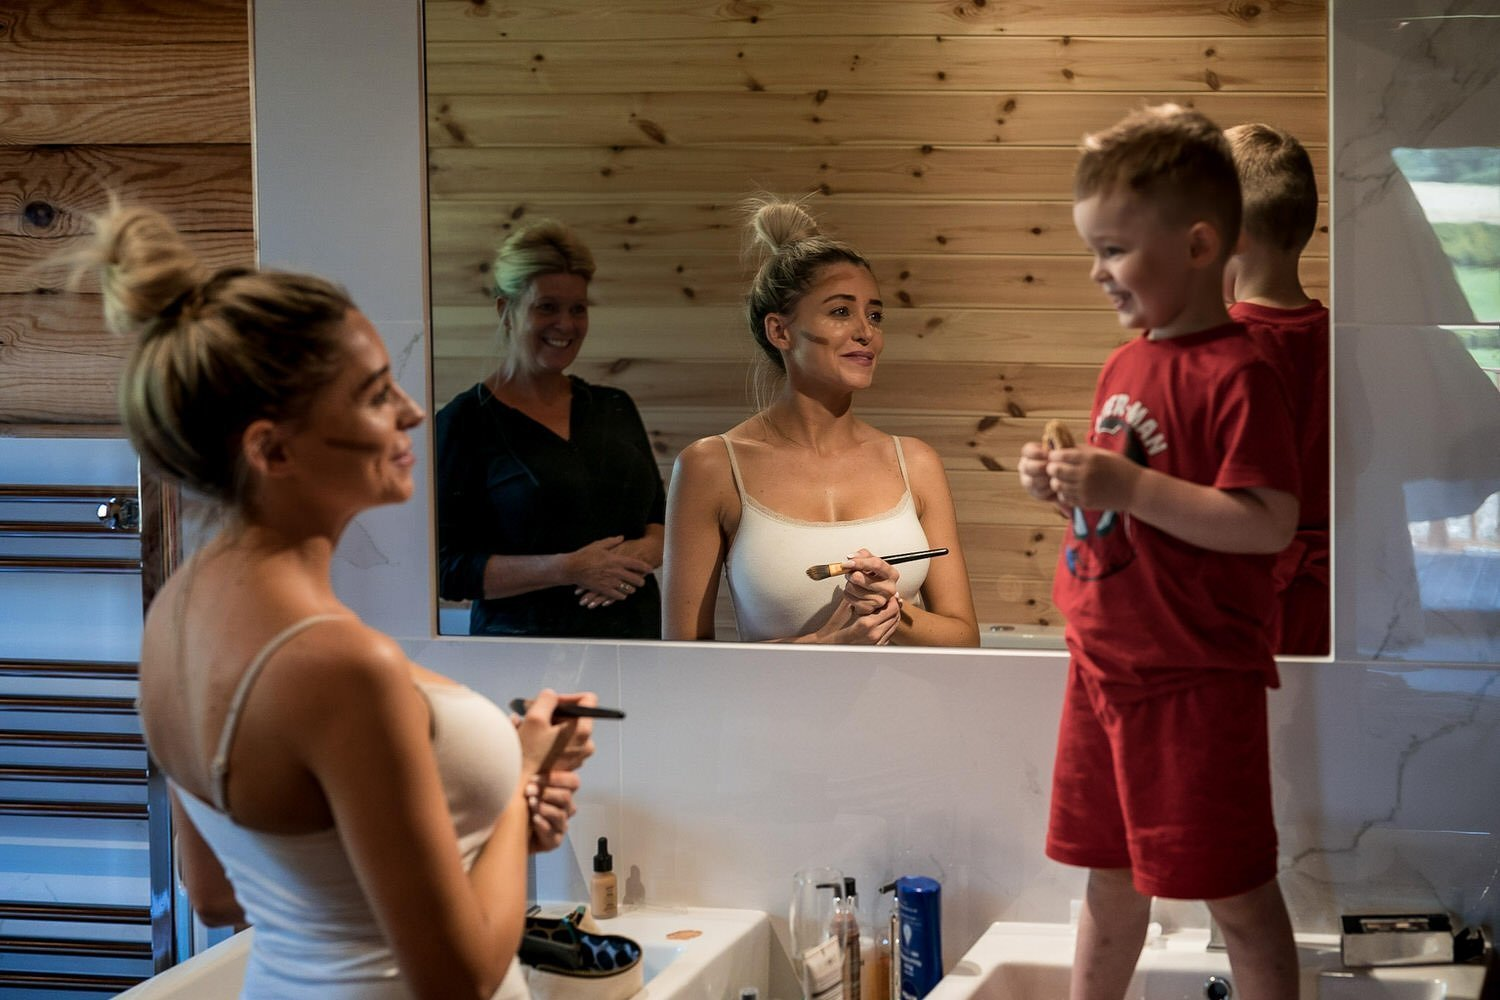 Foxton Lock Lodges Lockwood Weddings Photography Weddings Photography Bride doing her makeup while her son is standing in the sink looking at her